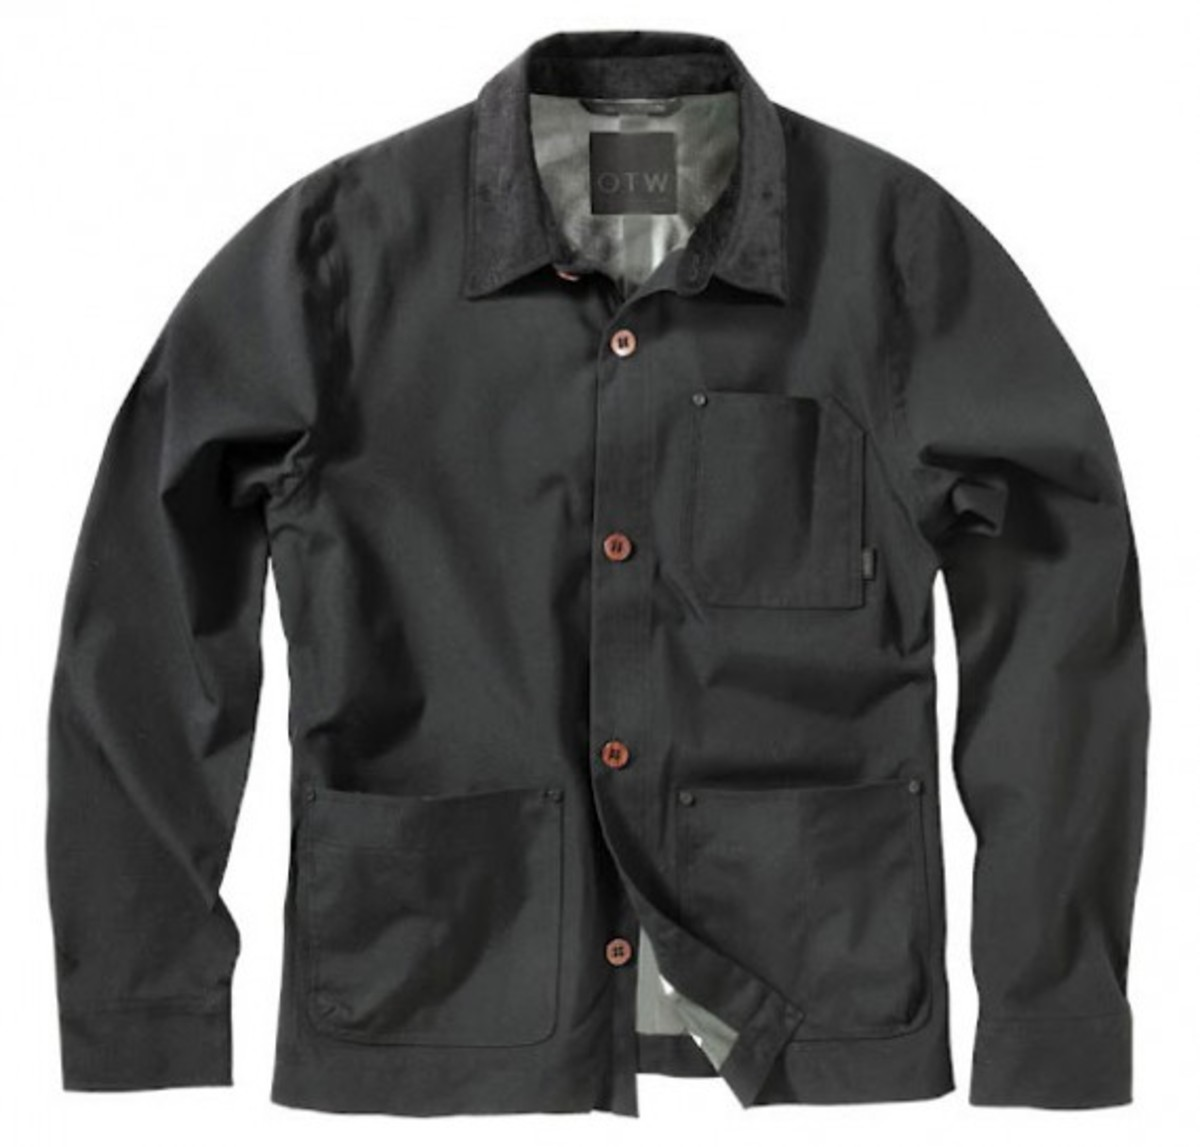 vans-otw-fall-2012-apparel-collection-10